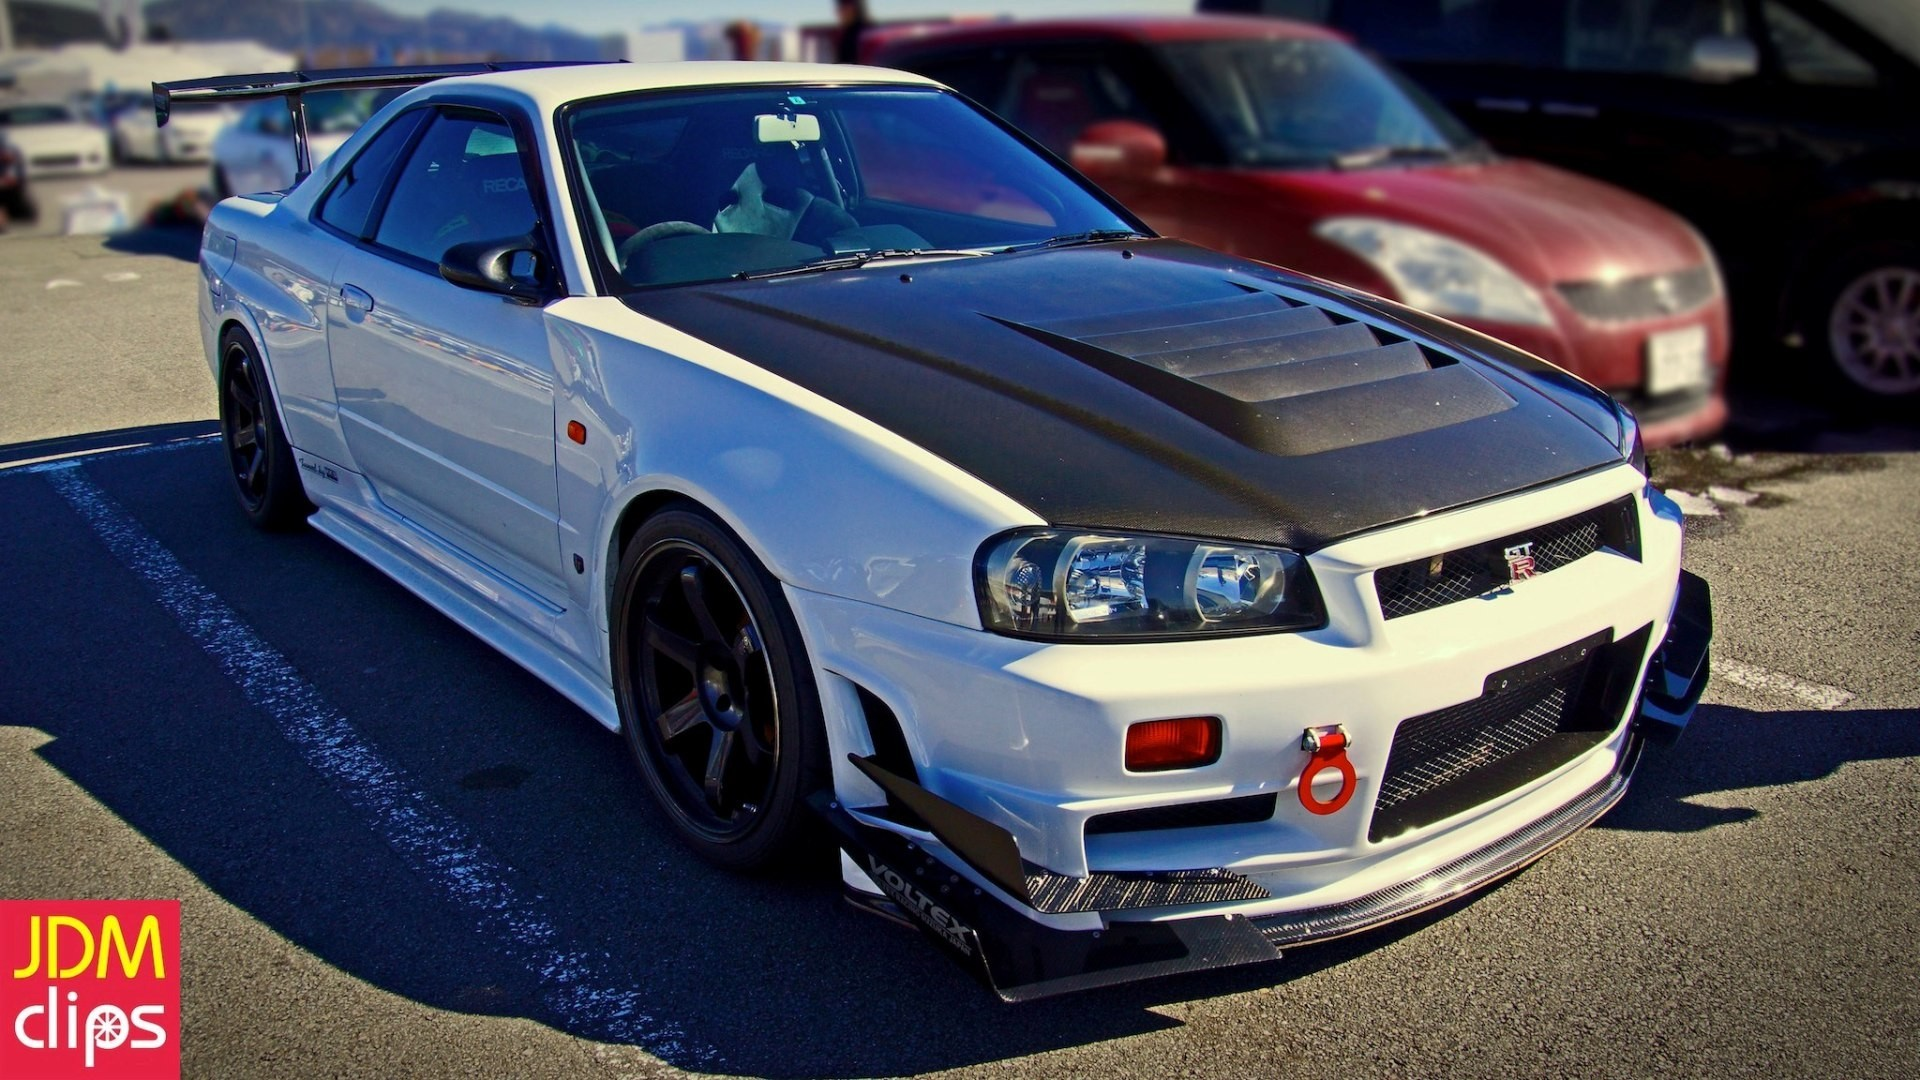 1920x1080 Nissan Skyline GT R R34 V Spec II, Nissan Skyline GT R R34, Nissan, JDM,  Car Wallpapers HD / Desktop and Mobile Backgrounds